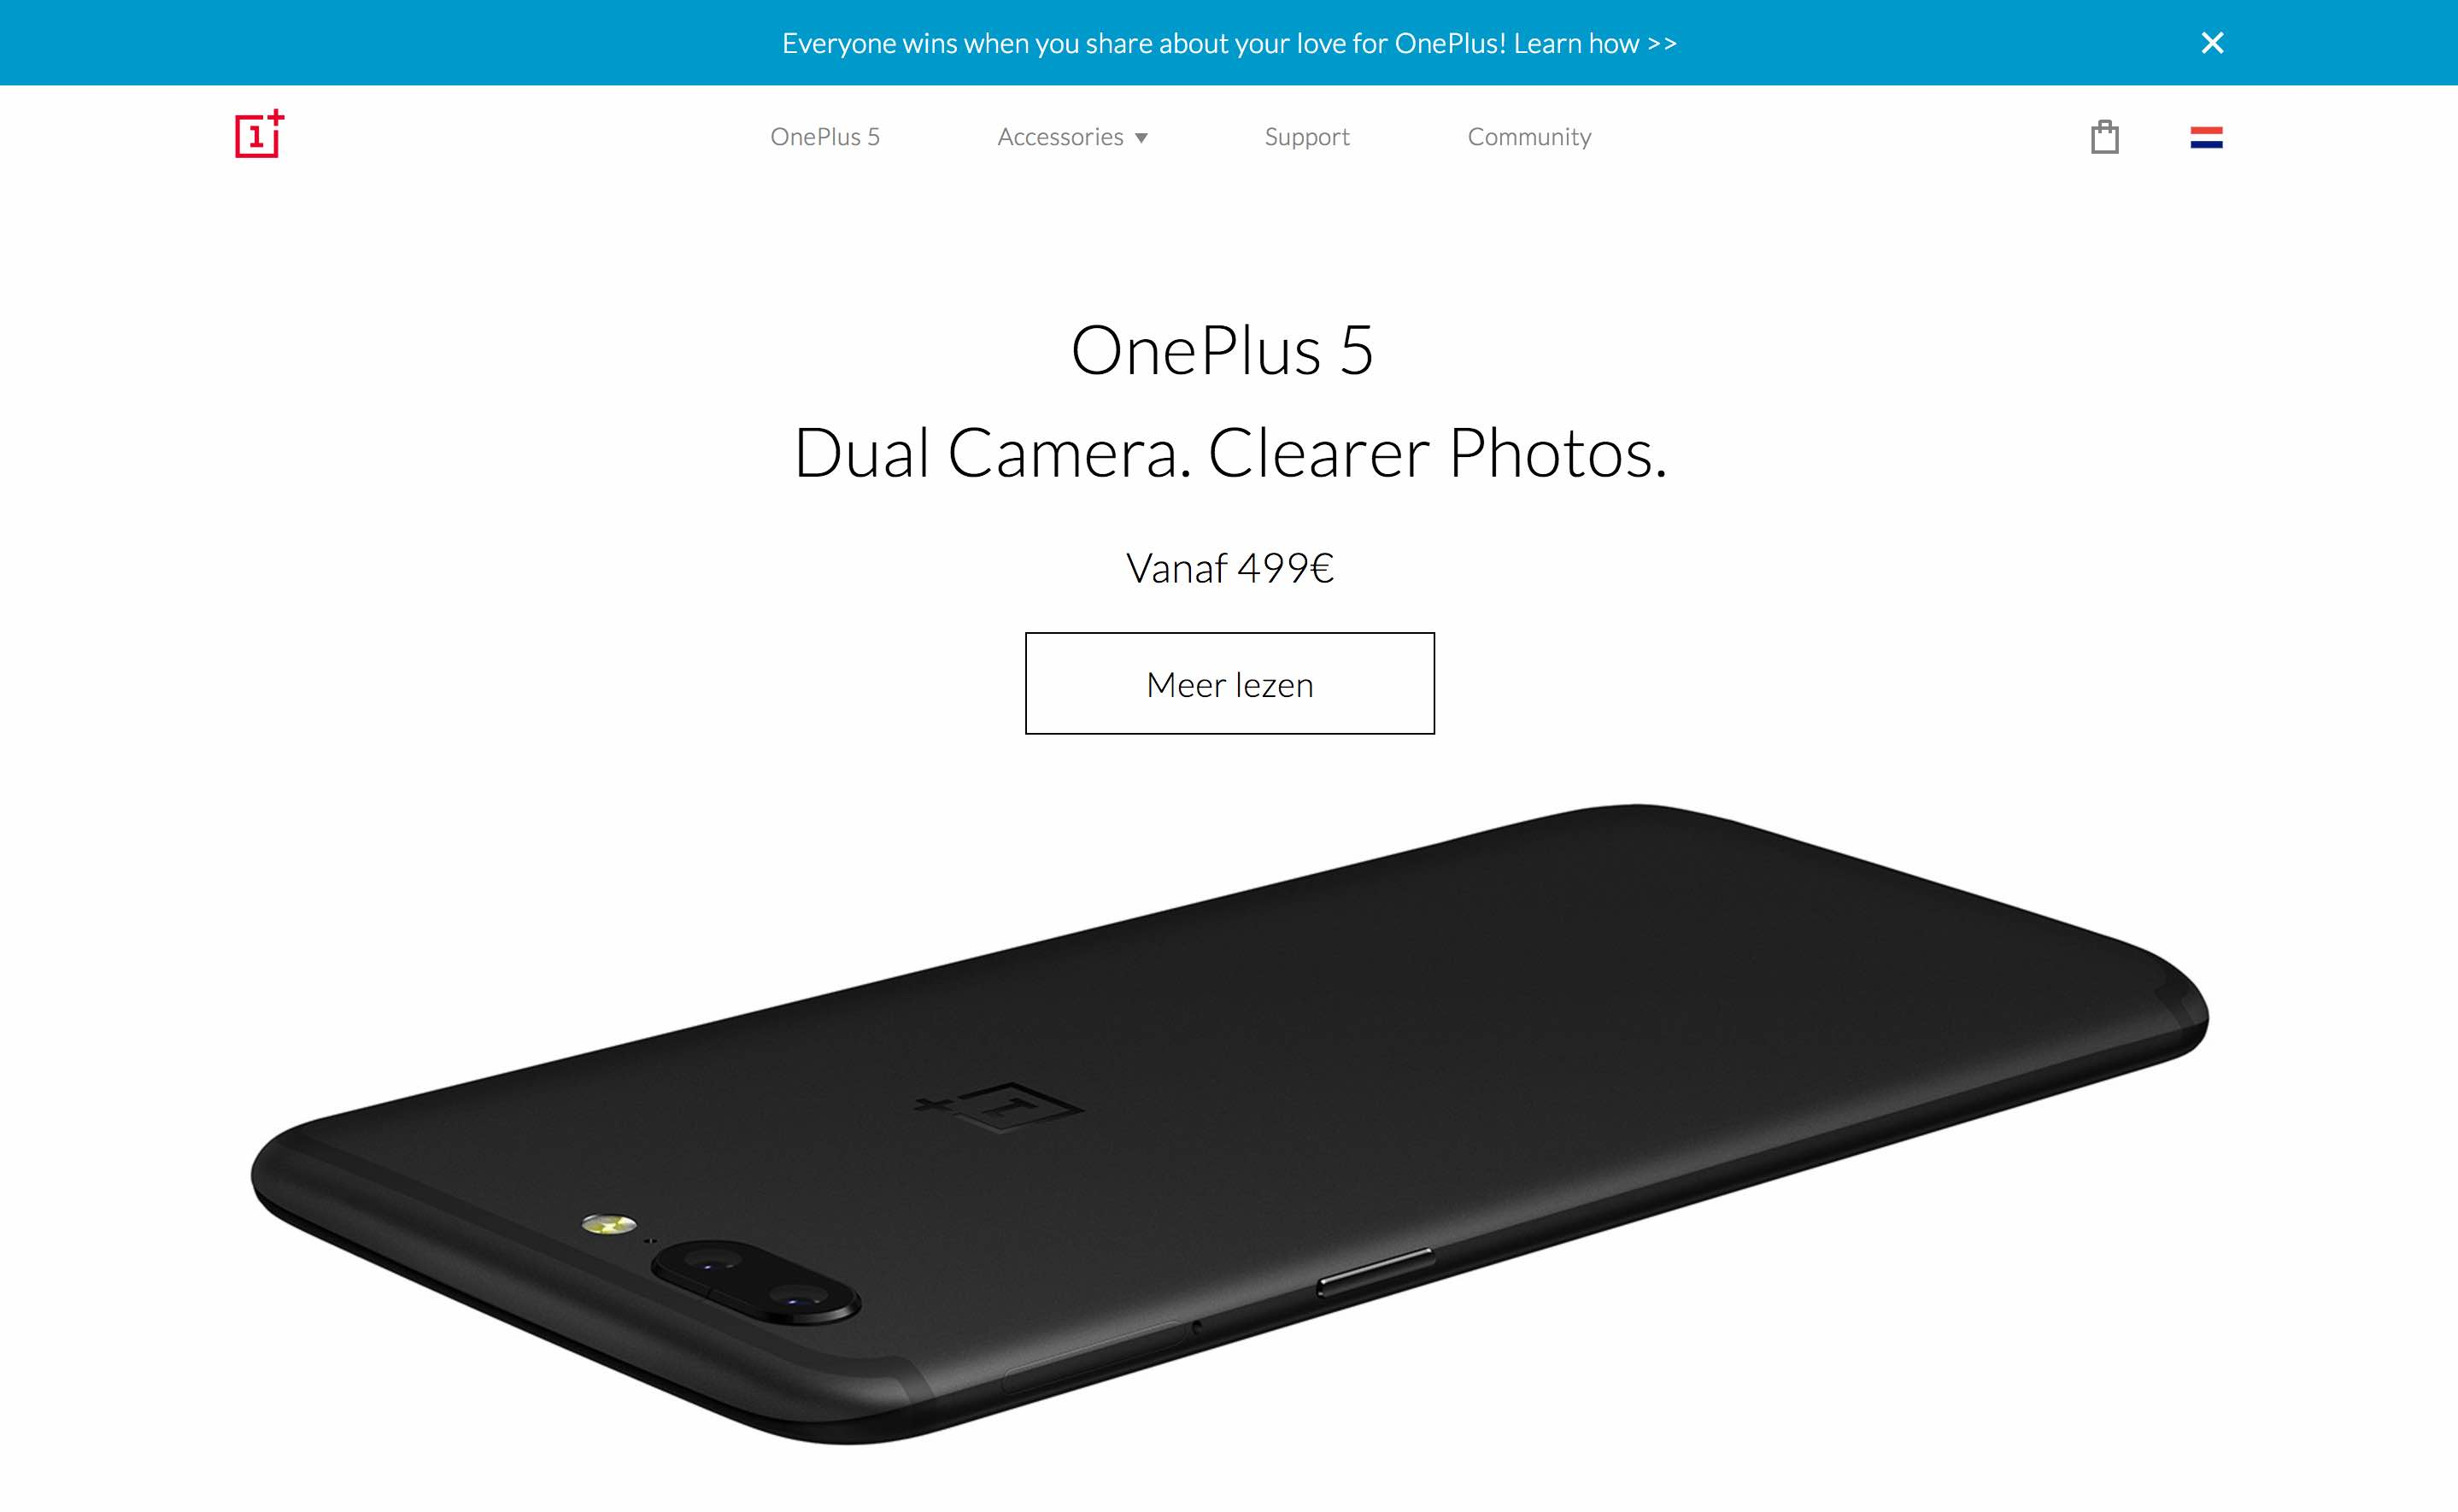 OnePlus homepage